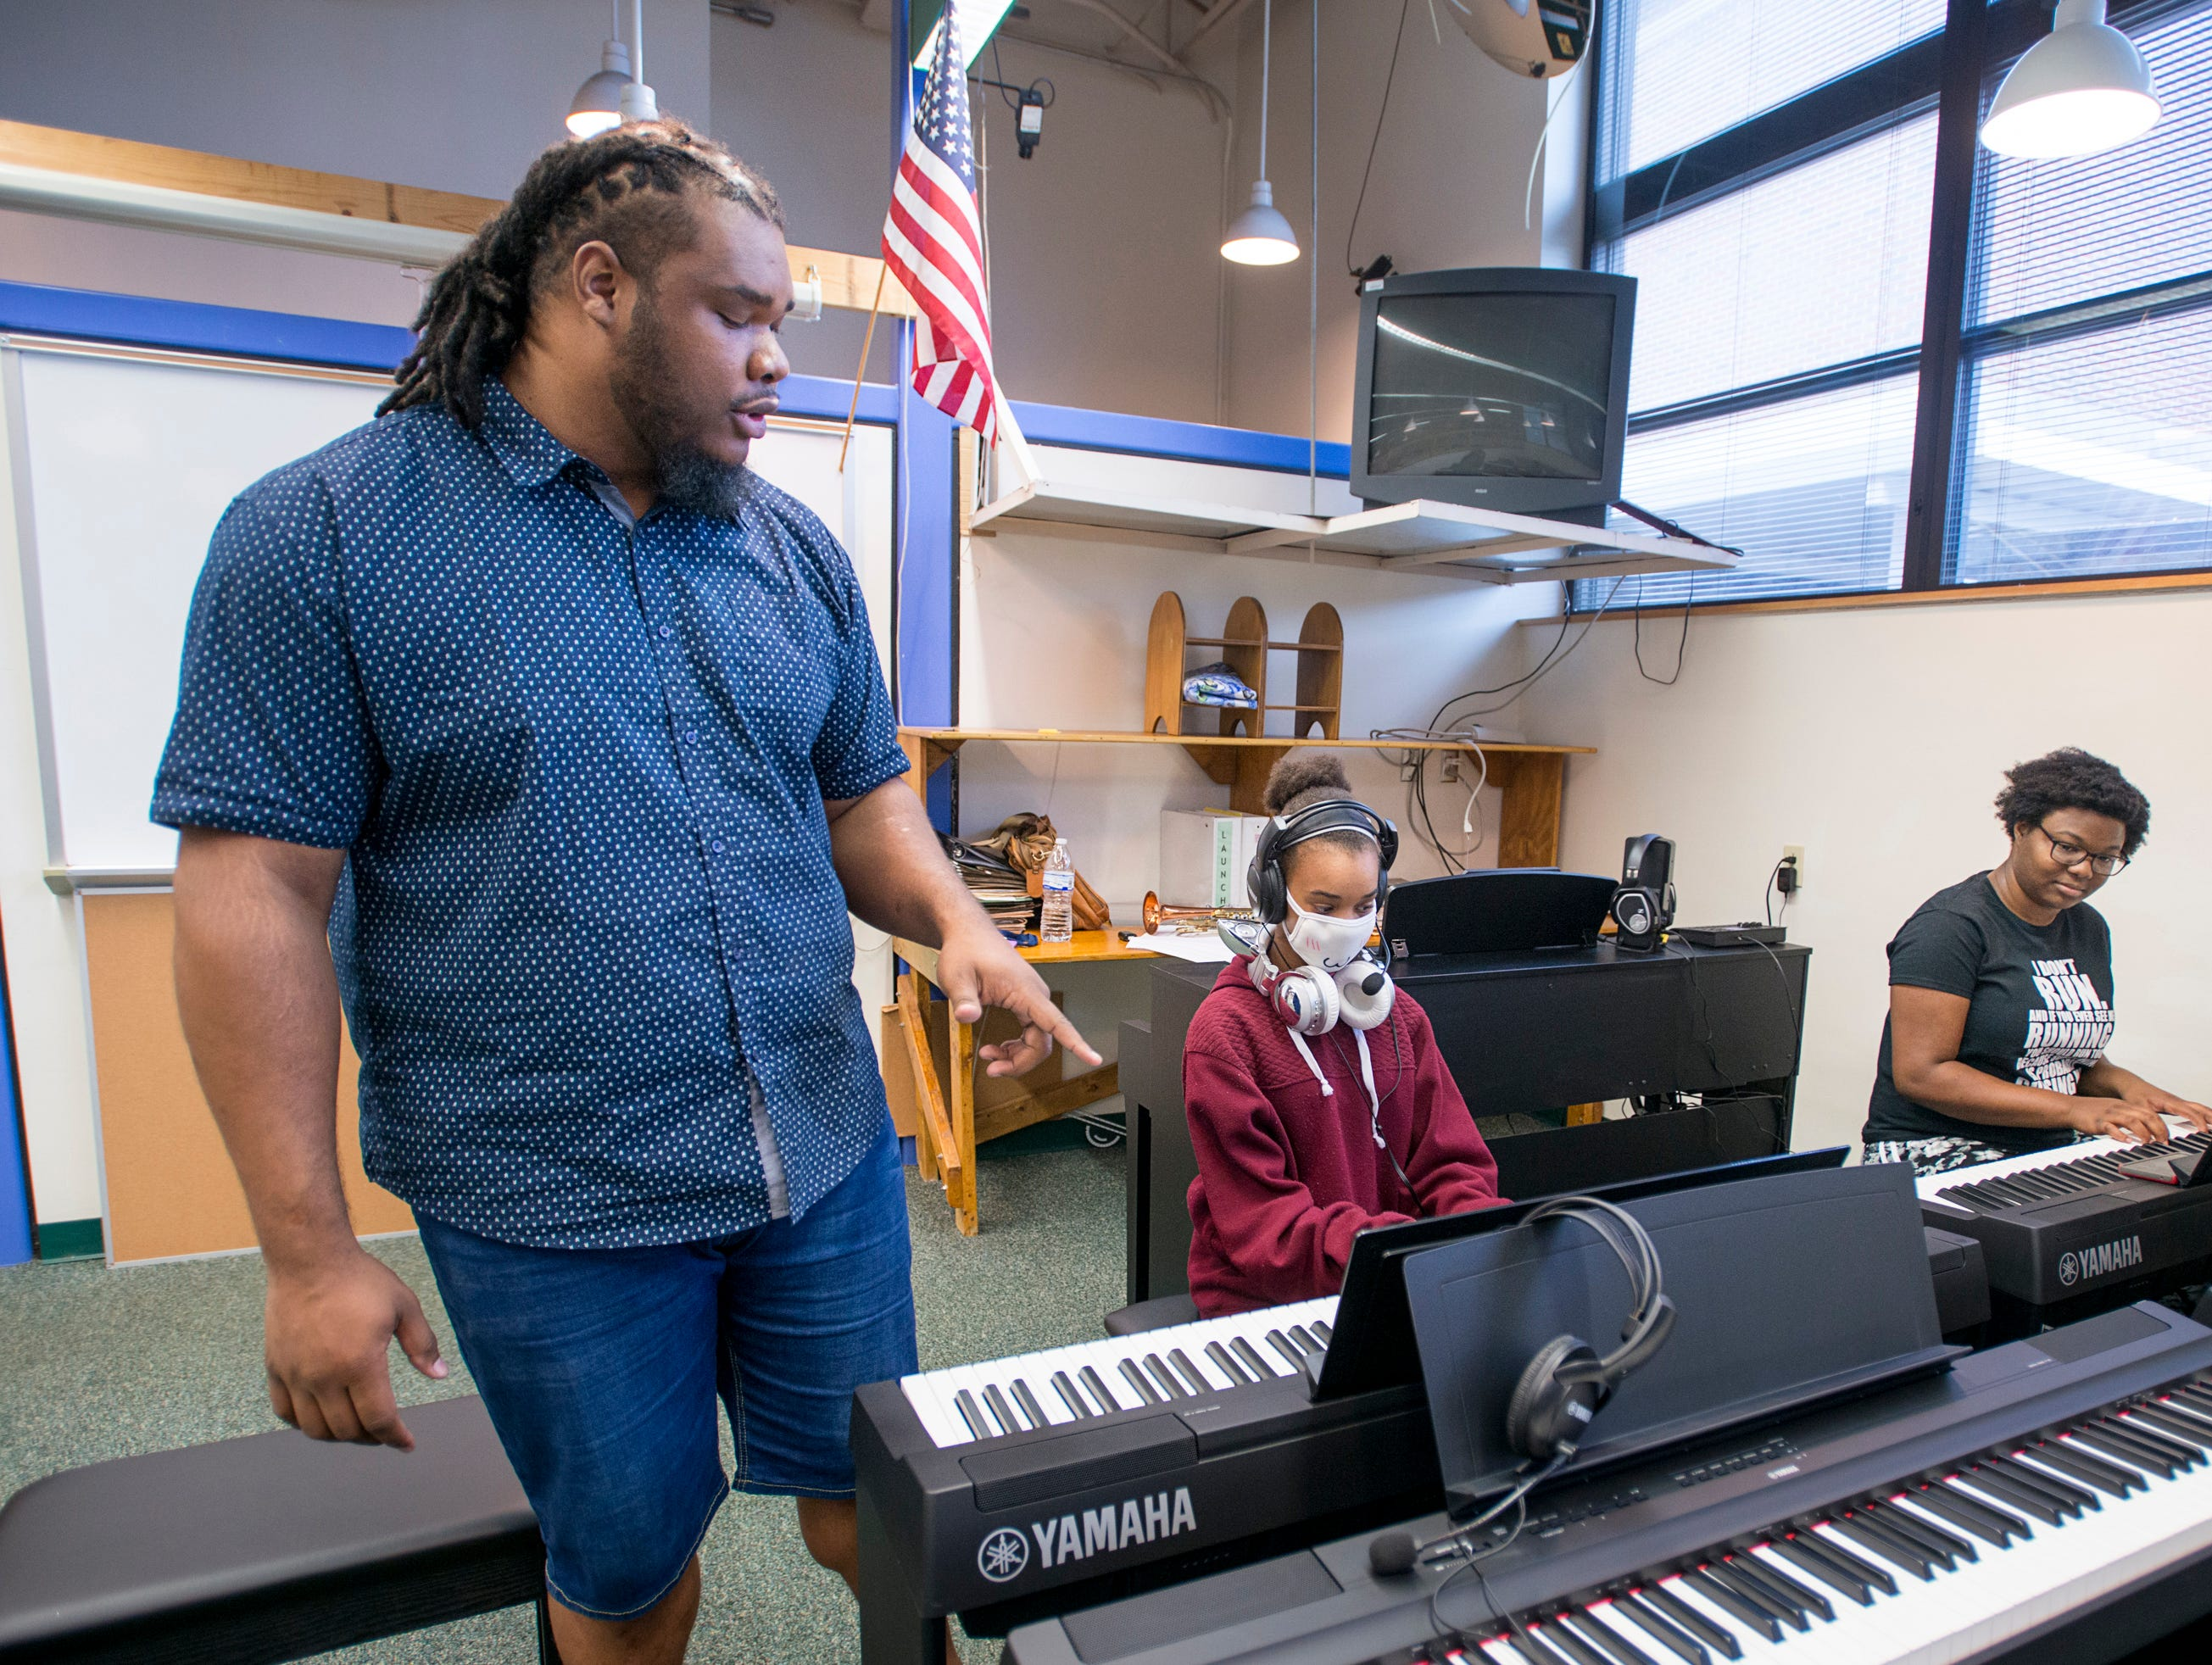 Music teacher Caleb Lovely gives a few pointers to Keira Petterson, 12, center, and Chasity Patterson, 14, as they try out the new piano studio at Warrington Middle School in Pensacola on Friday, August 2, 2018.